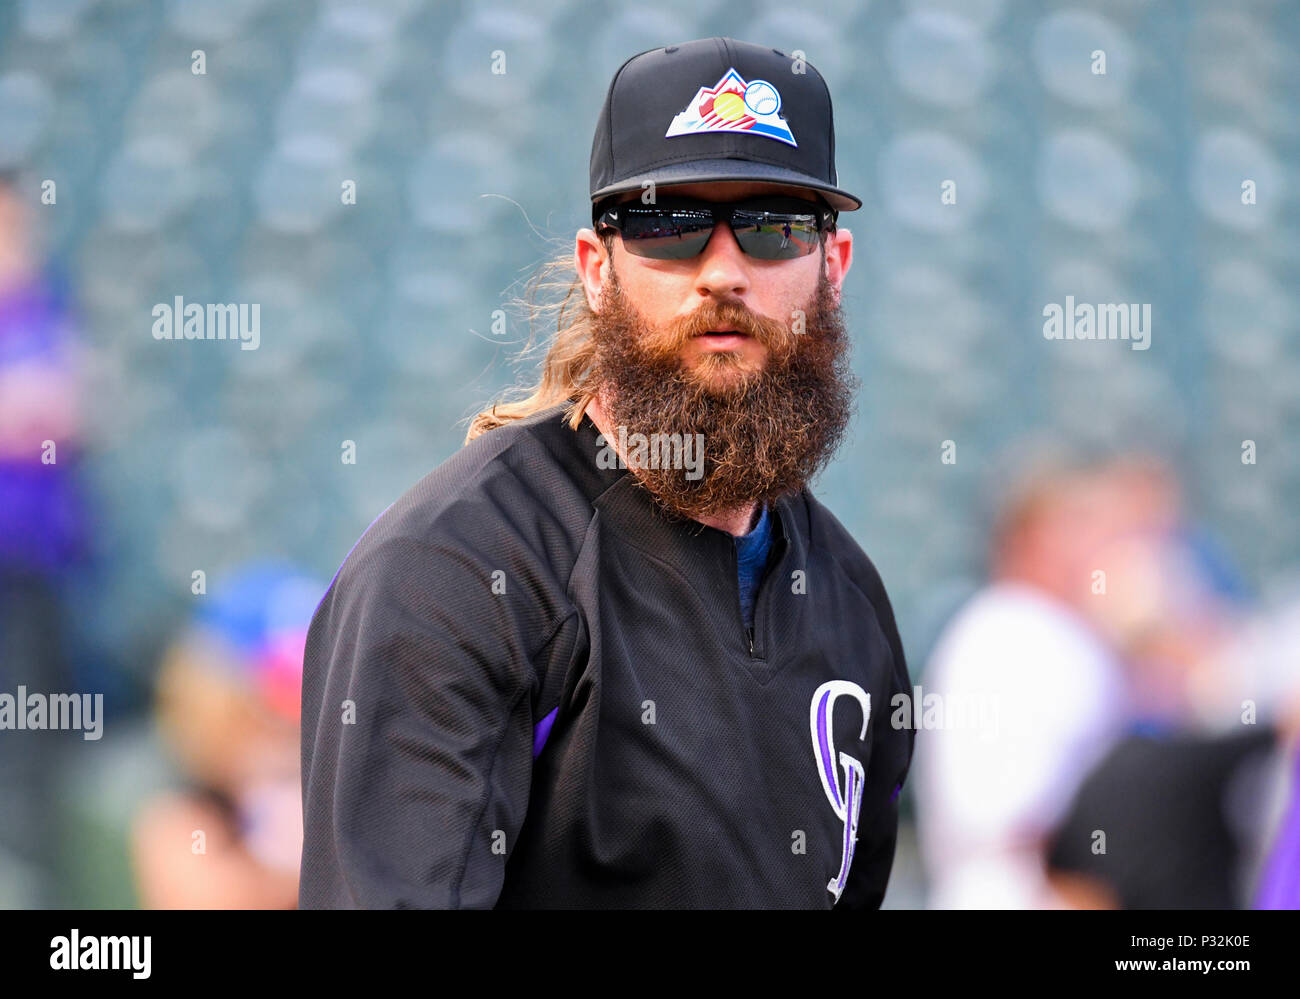 1e3f1eef9 Jun 15, 2018: Colorado Rockies center fielder Charlie Blackmon #19 during batting  practice before an MLB game between the Colorado Rockies and the Texas ...